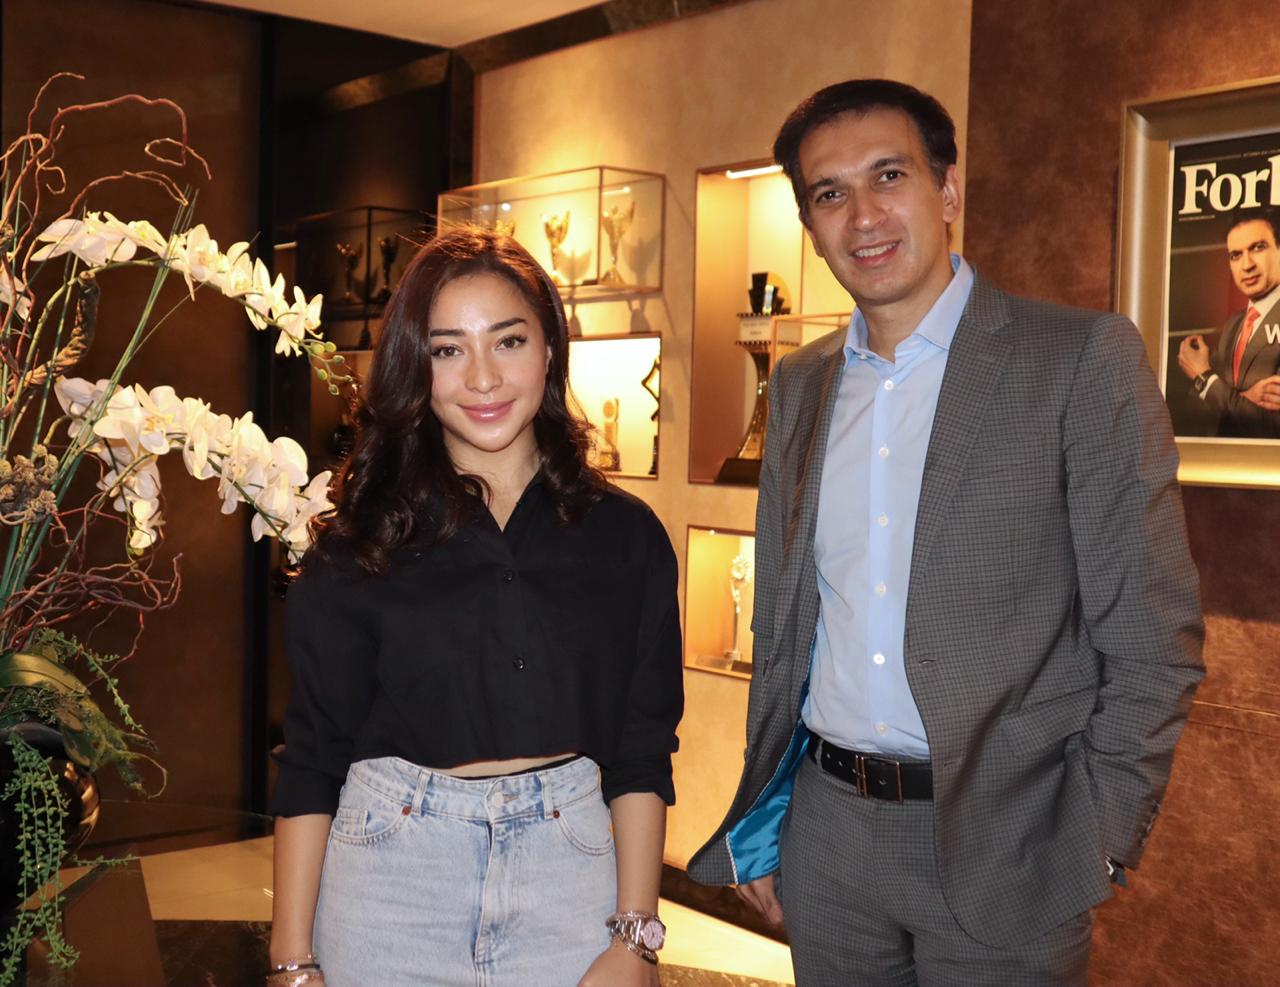 Had a nice little chat with Nikita Willy! Thank you for coming, all the best to you